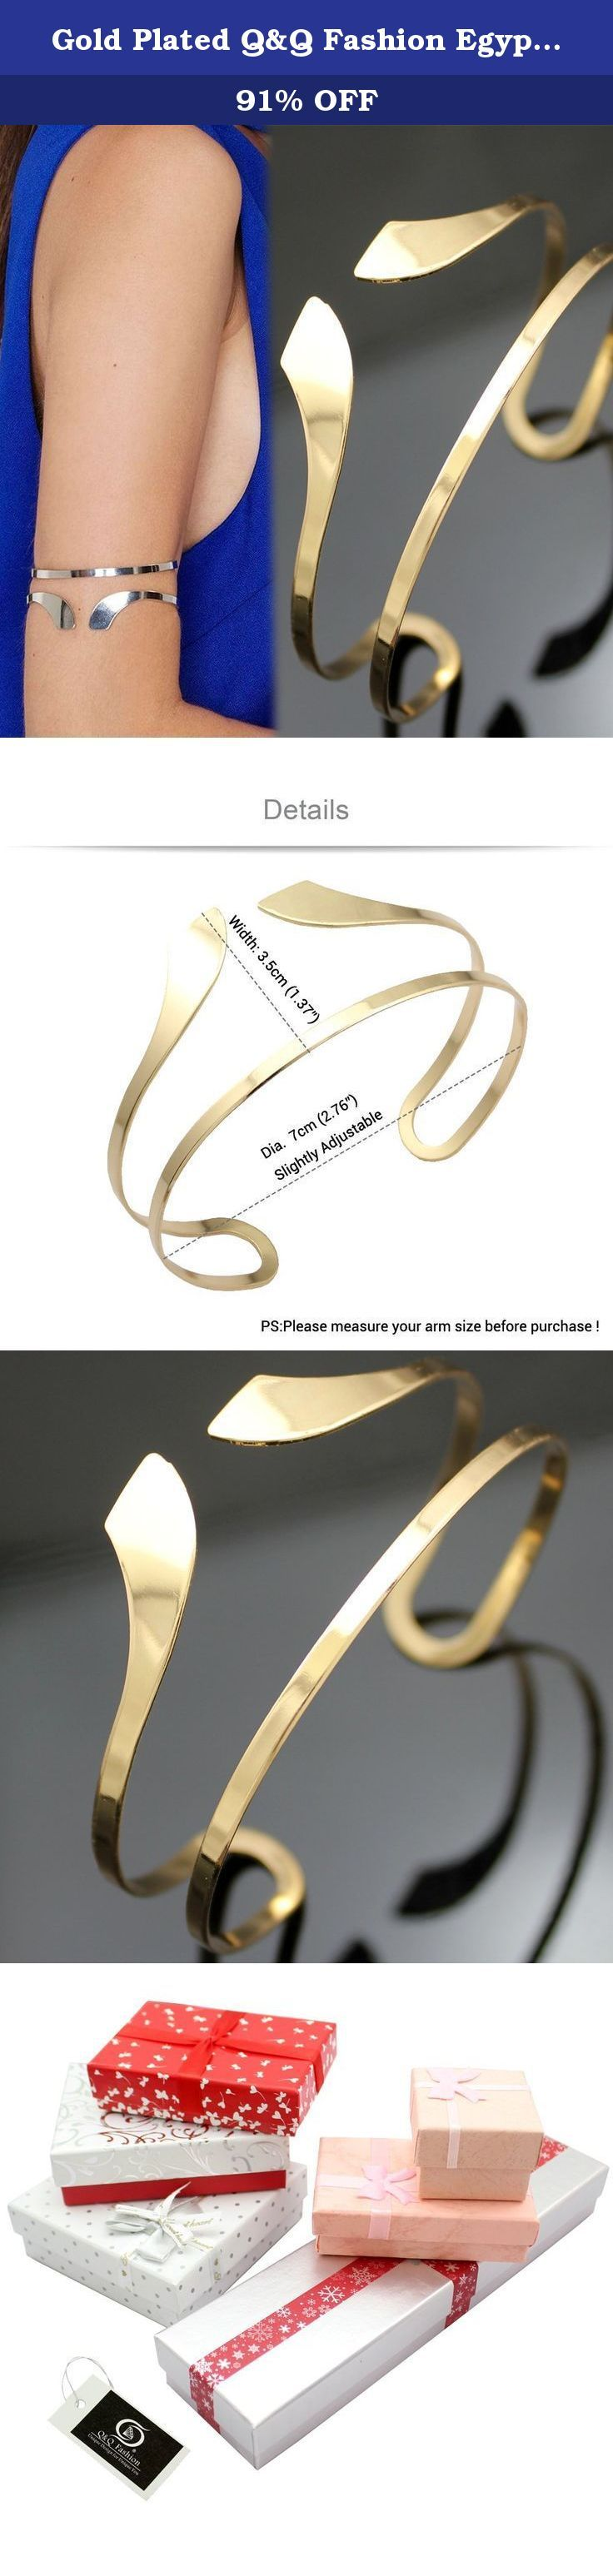 Gold Plated Q&Q Fashion Egypt Bar Curve Geo Open Upper Arm Cuff Armlet Armband Bangle Bracelet Gift. Q&Q Fashion Egypt Bar Curve Geo Open Upper Arm Cuff Armlet Armband Bangle Bracelet Gift Art Nouveau style ,Art Deco style ,Fancy Dress style ,Kitsch and so on it`s for occasions like Party,Fashion Show,Photo,Prom.and so on .